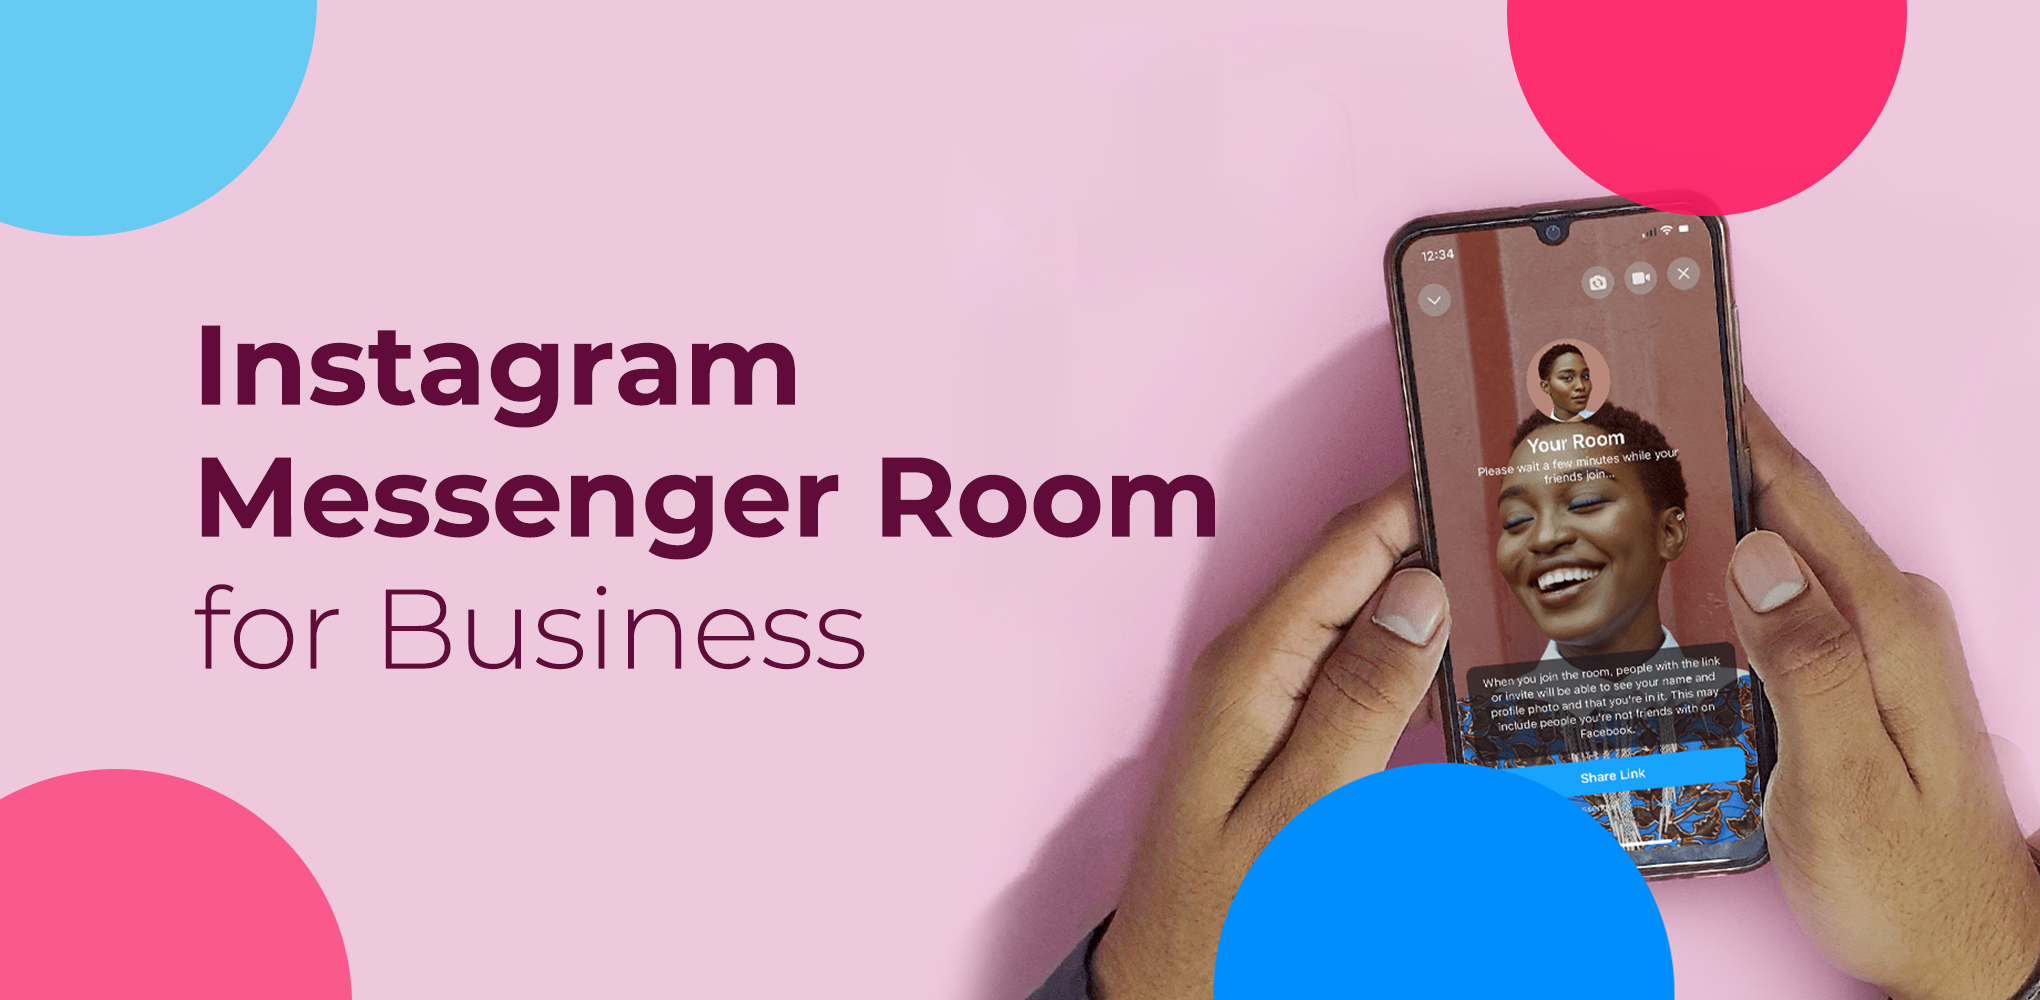 Instagram Messenger Room for Business